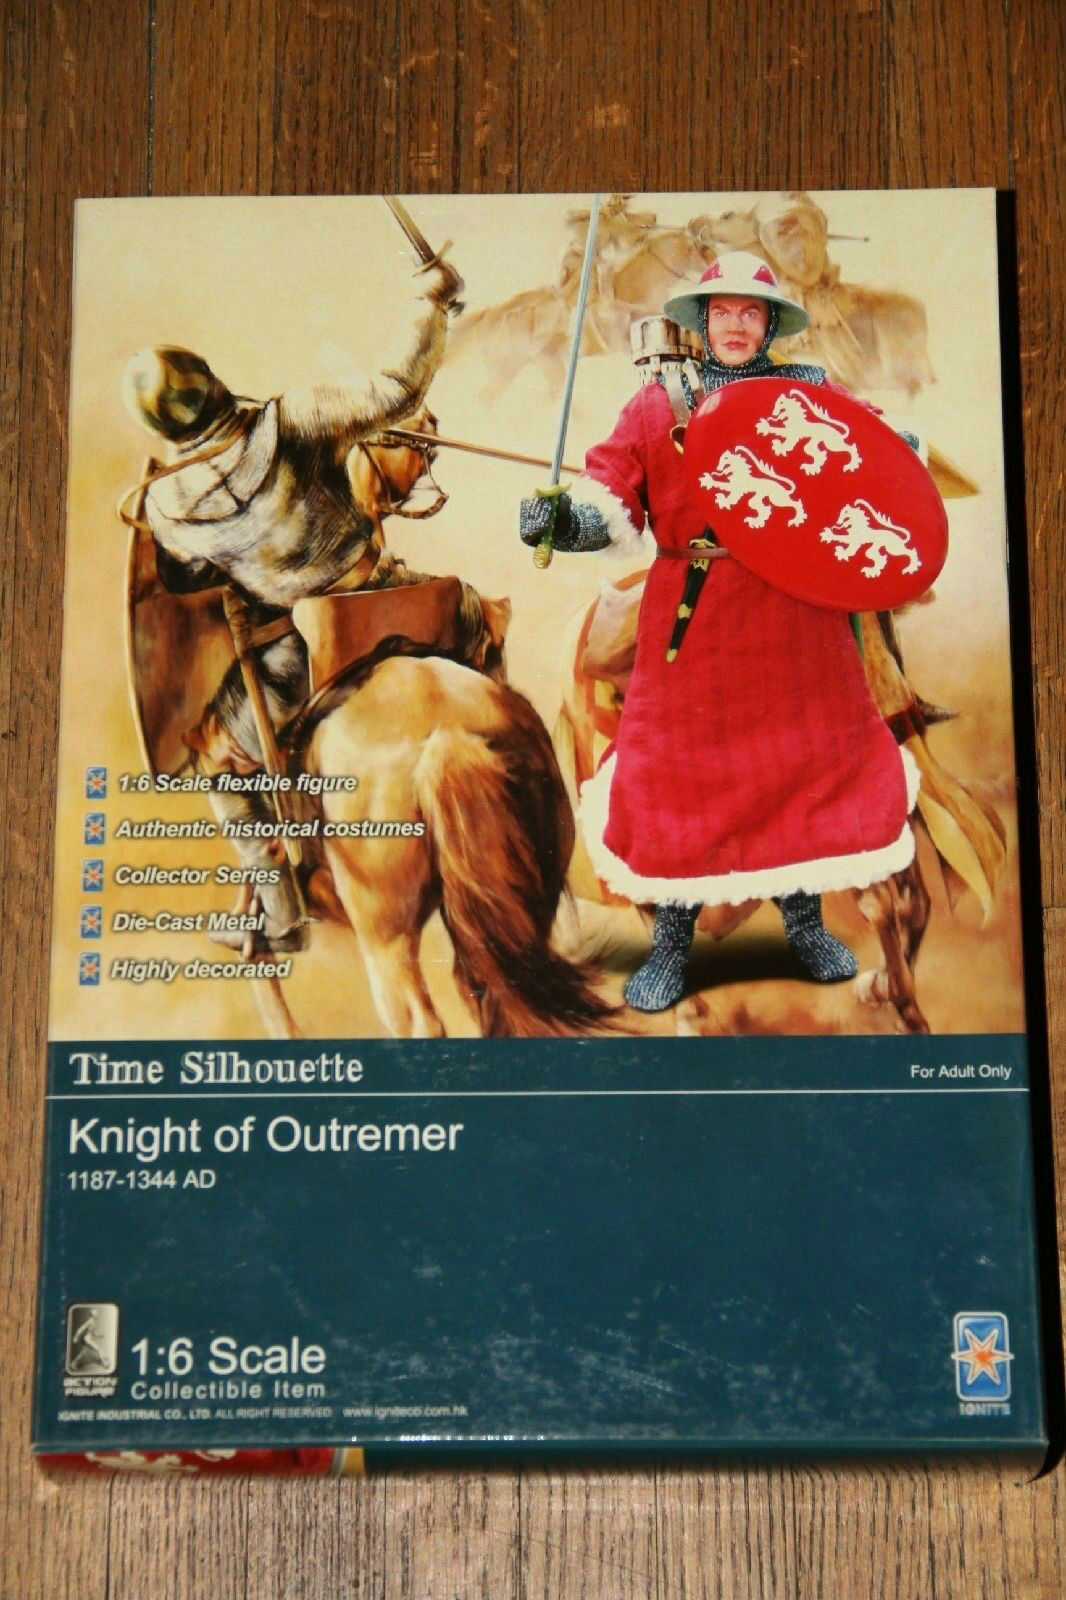 Ignite 1 6 scale 12  Time Silhouette KNIGHT OF OUTREMER Action Figure  CU014 MIB